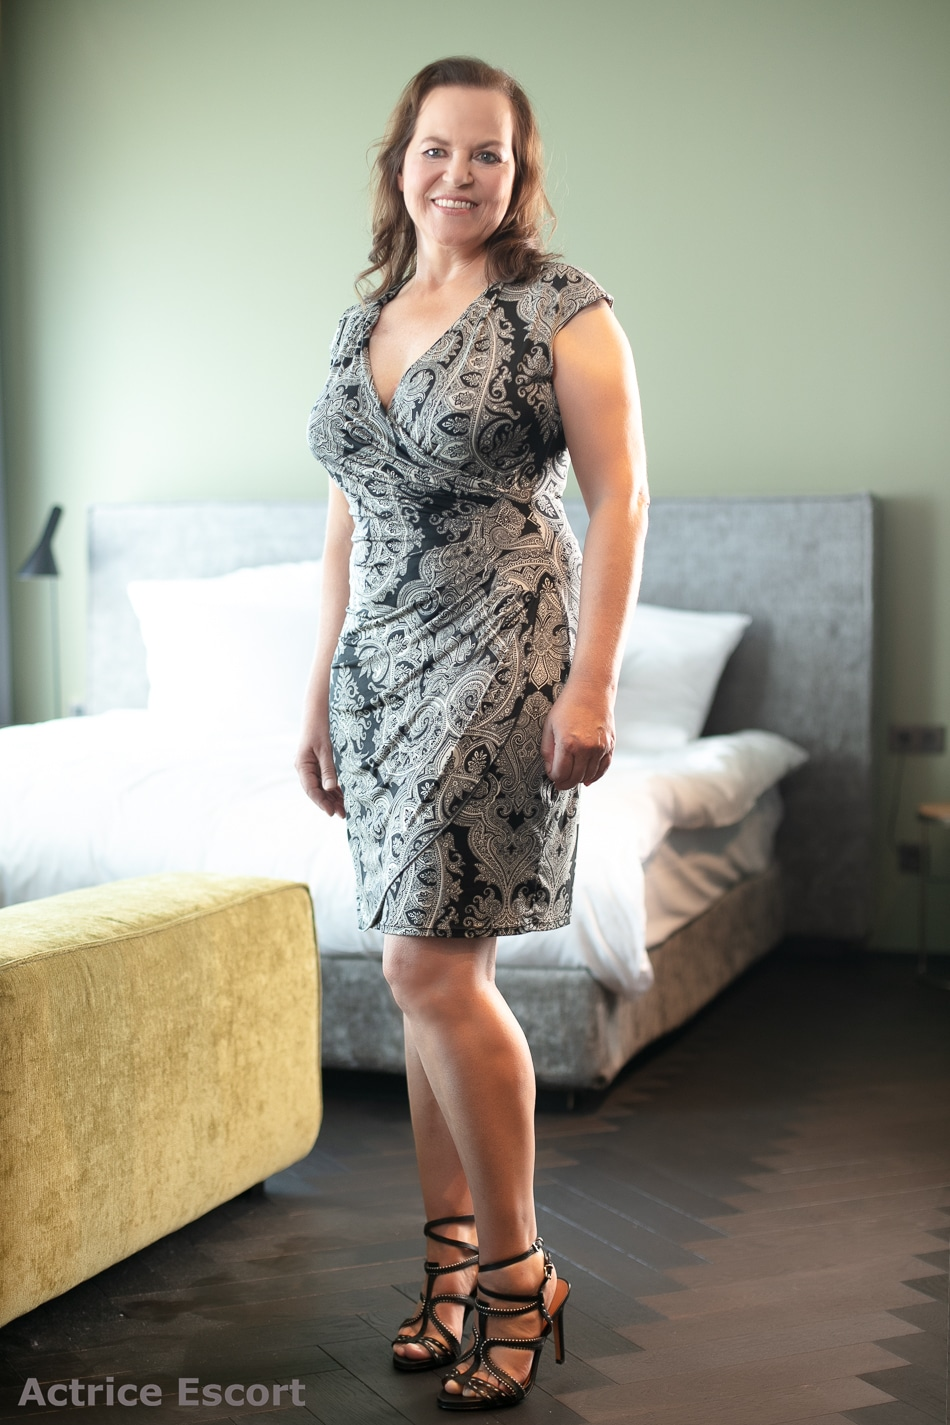 Bettina Escortservice Duesseldorf(2)